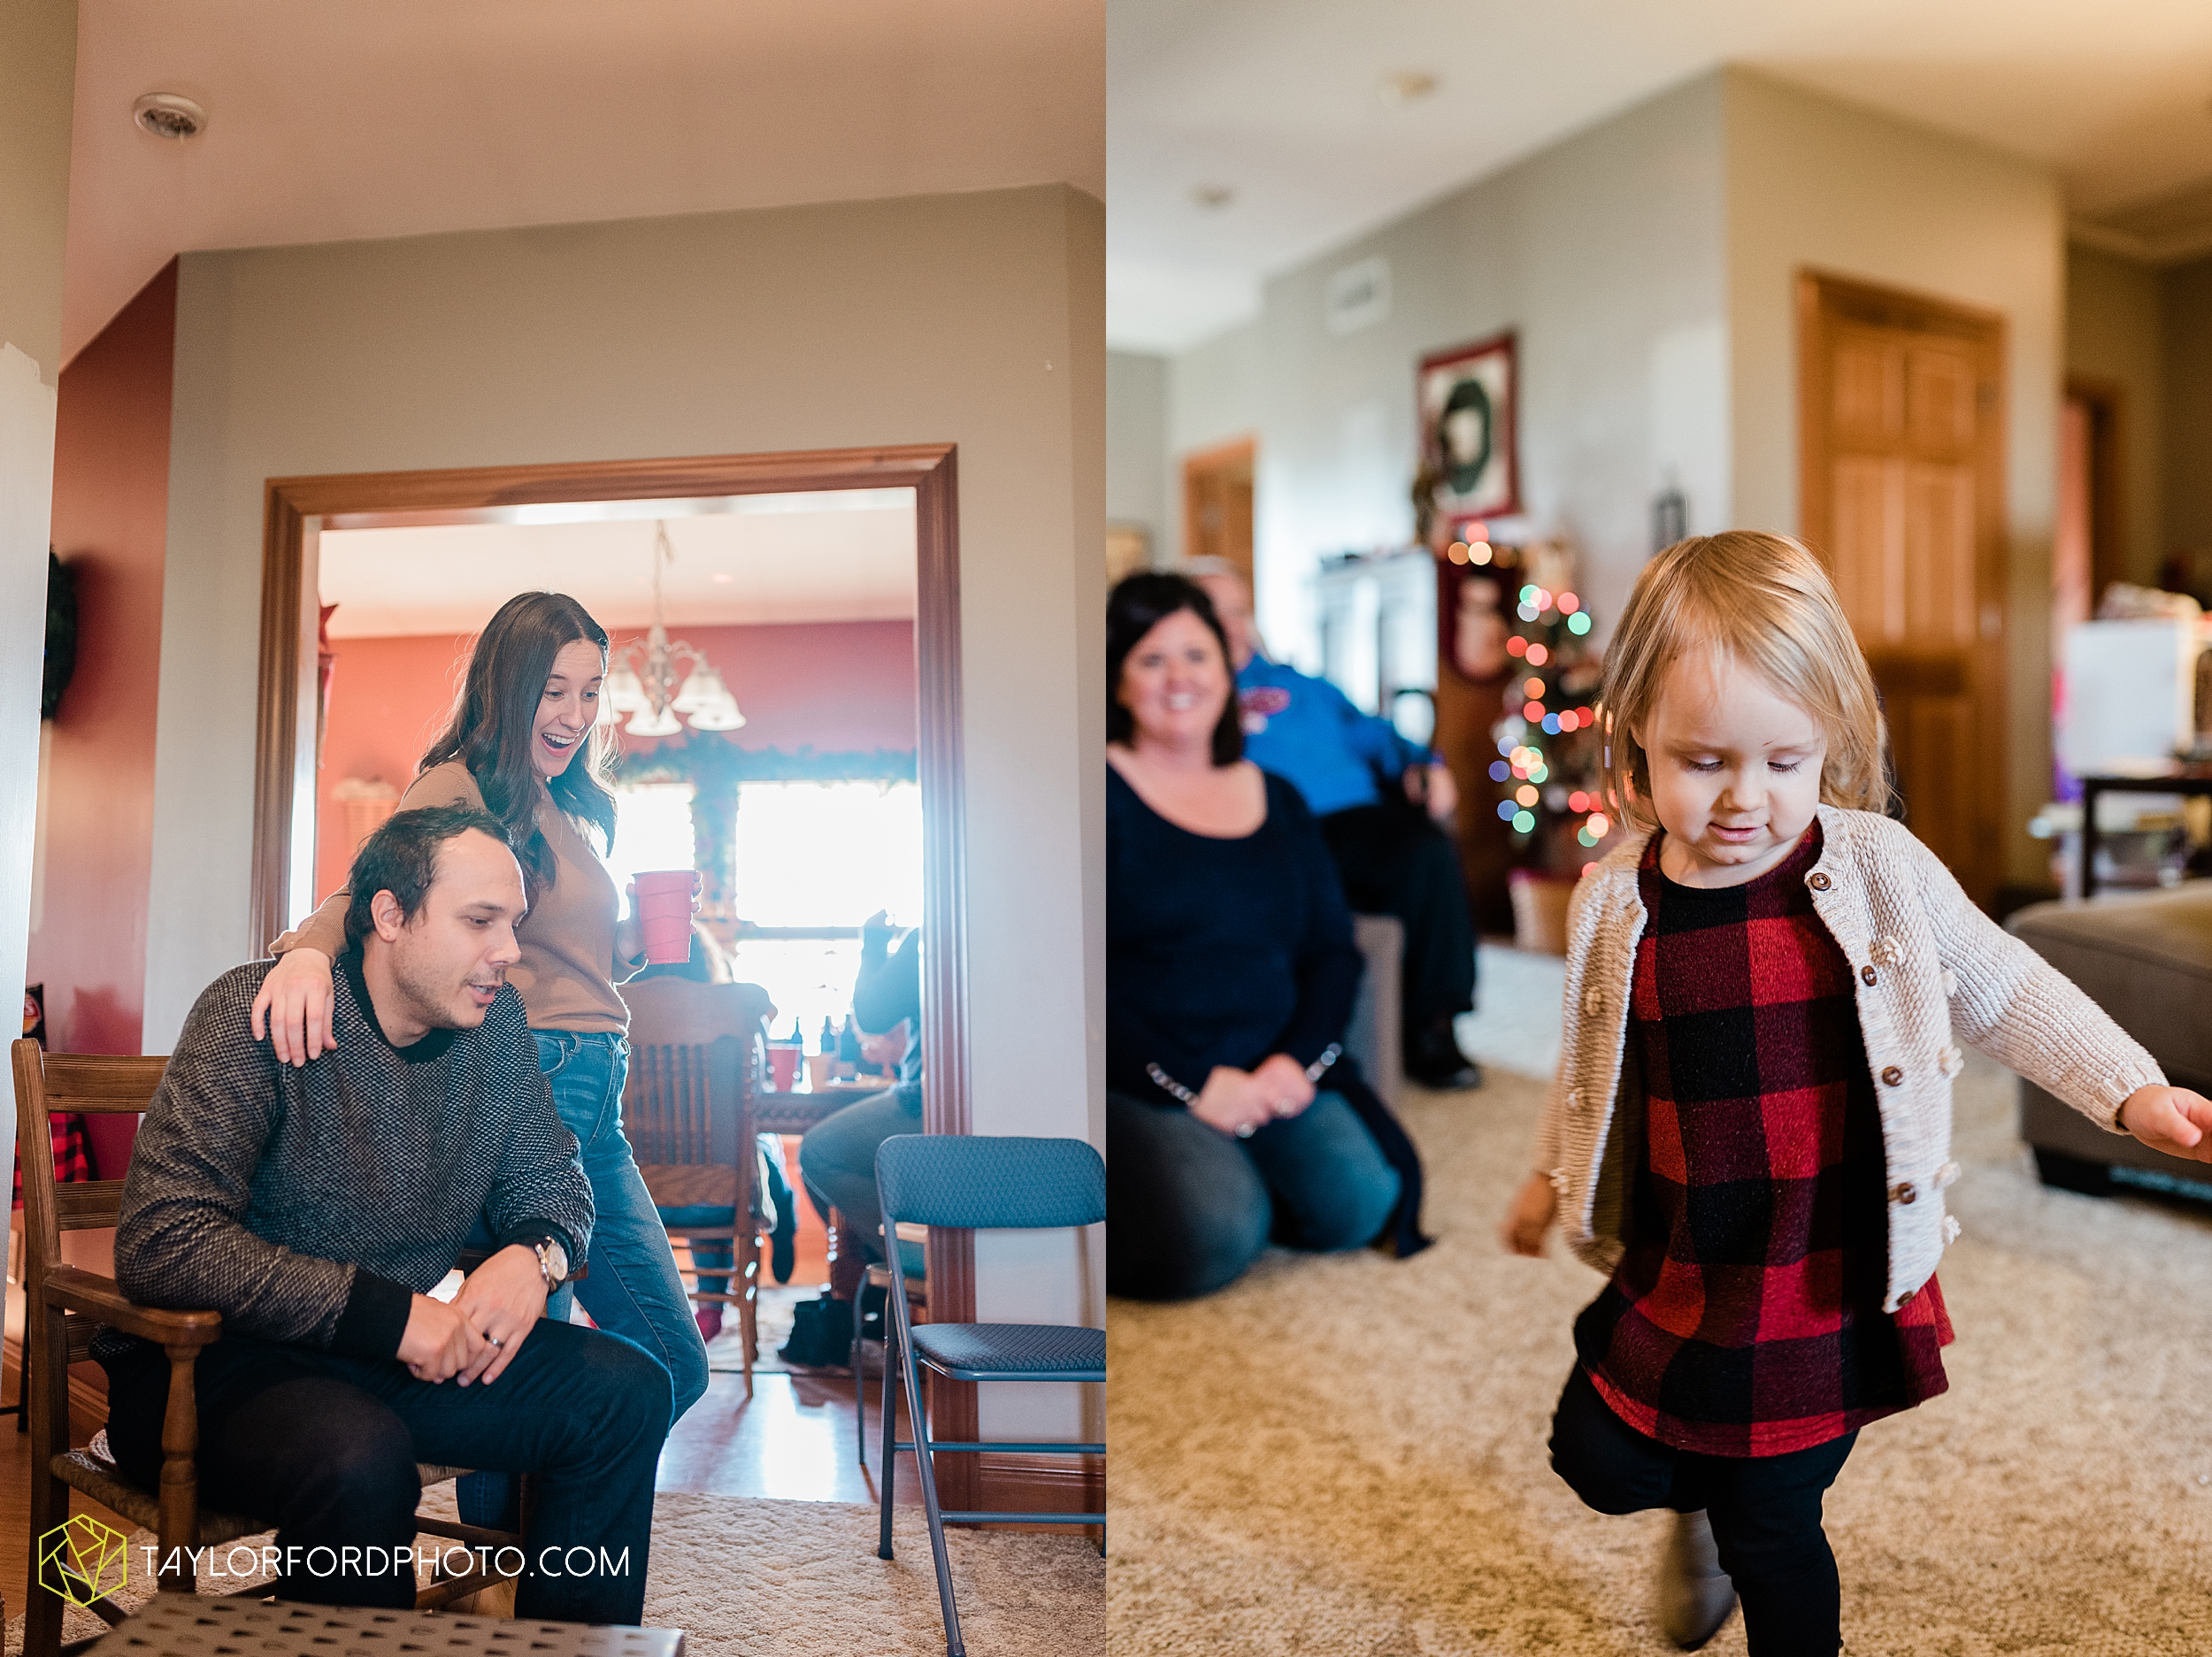 fortney-matthews-extended-family-van-wert-ohio-at-home-family-farm-photography-taylor-ford-hirschy-photographer_2049.jpg